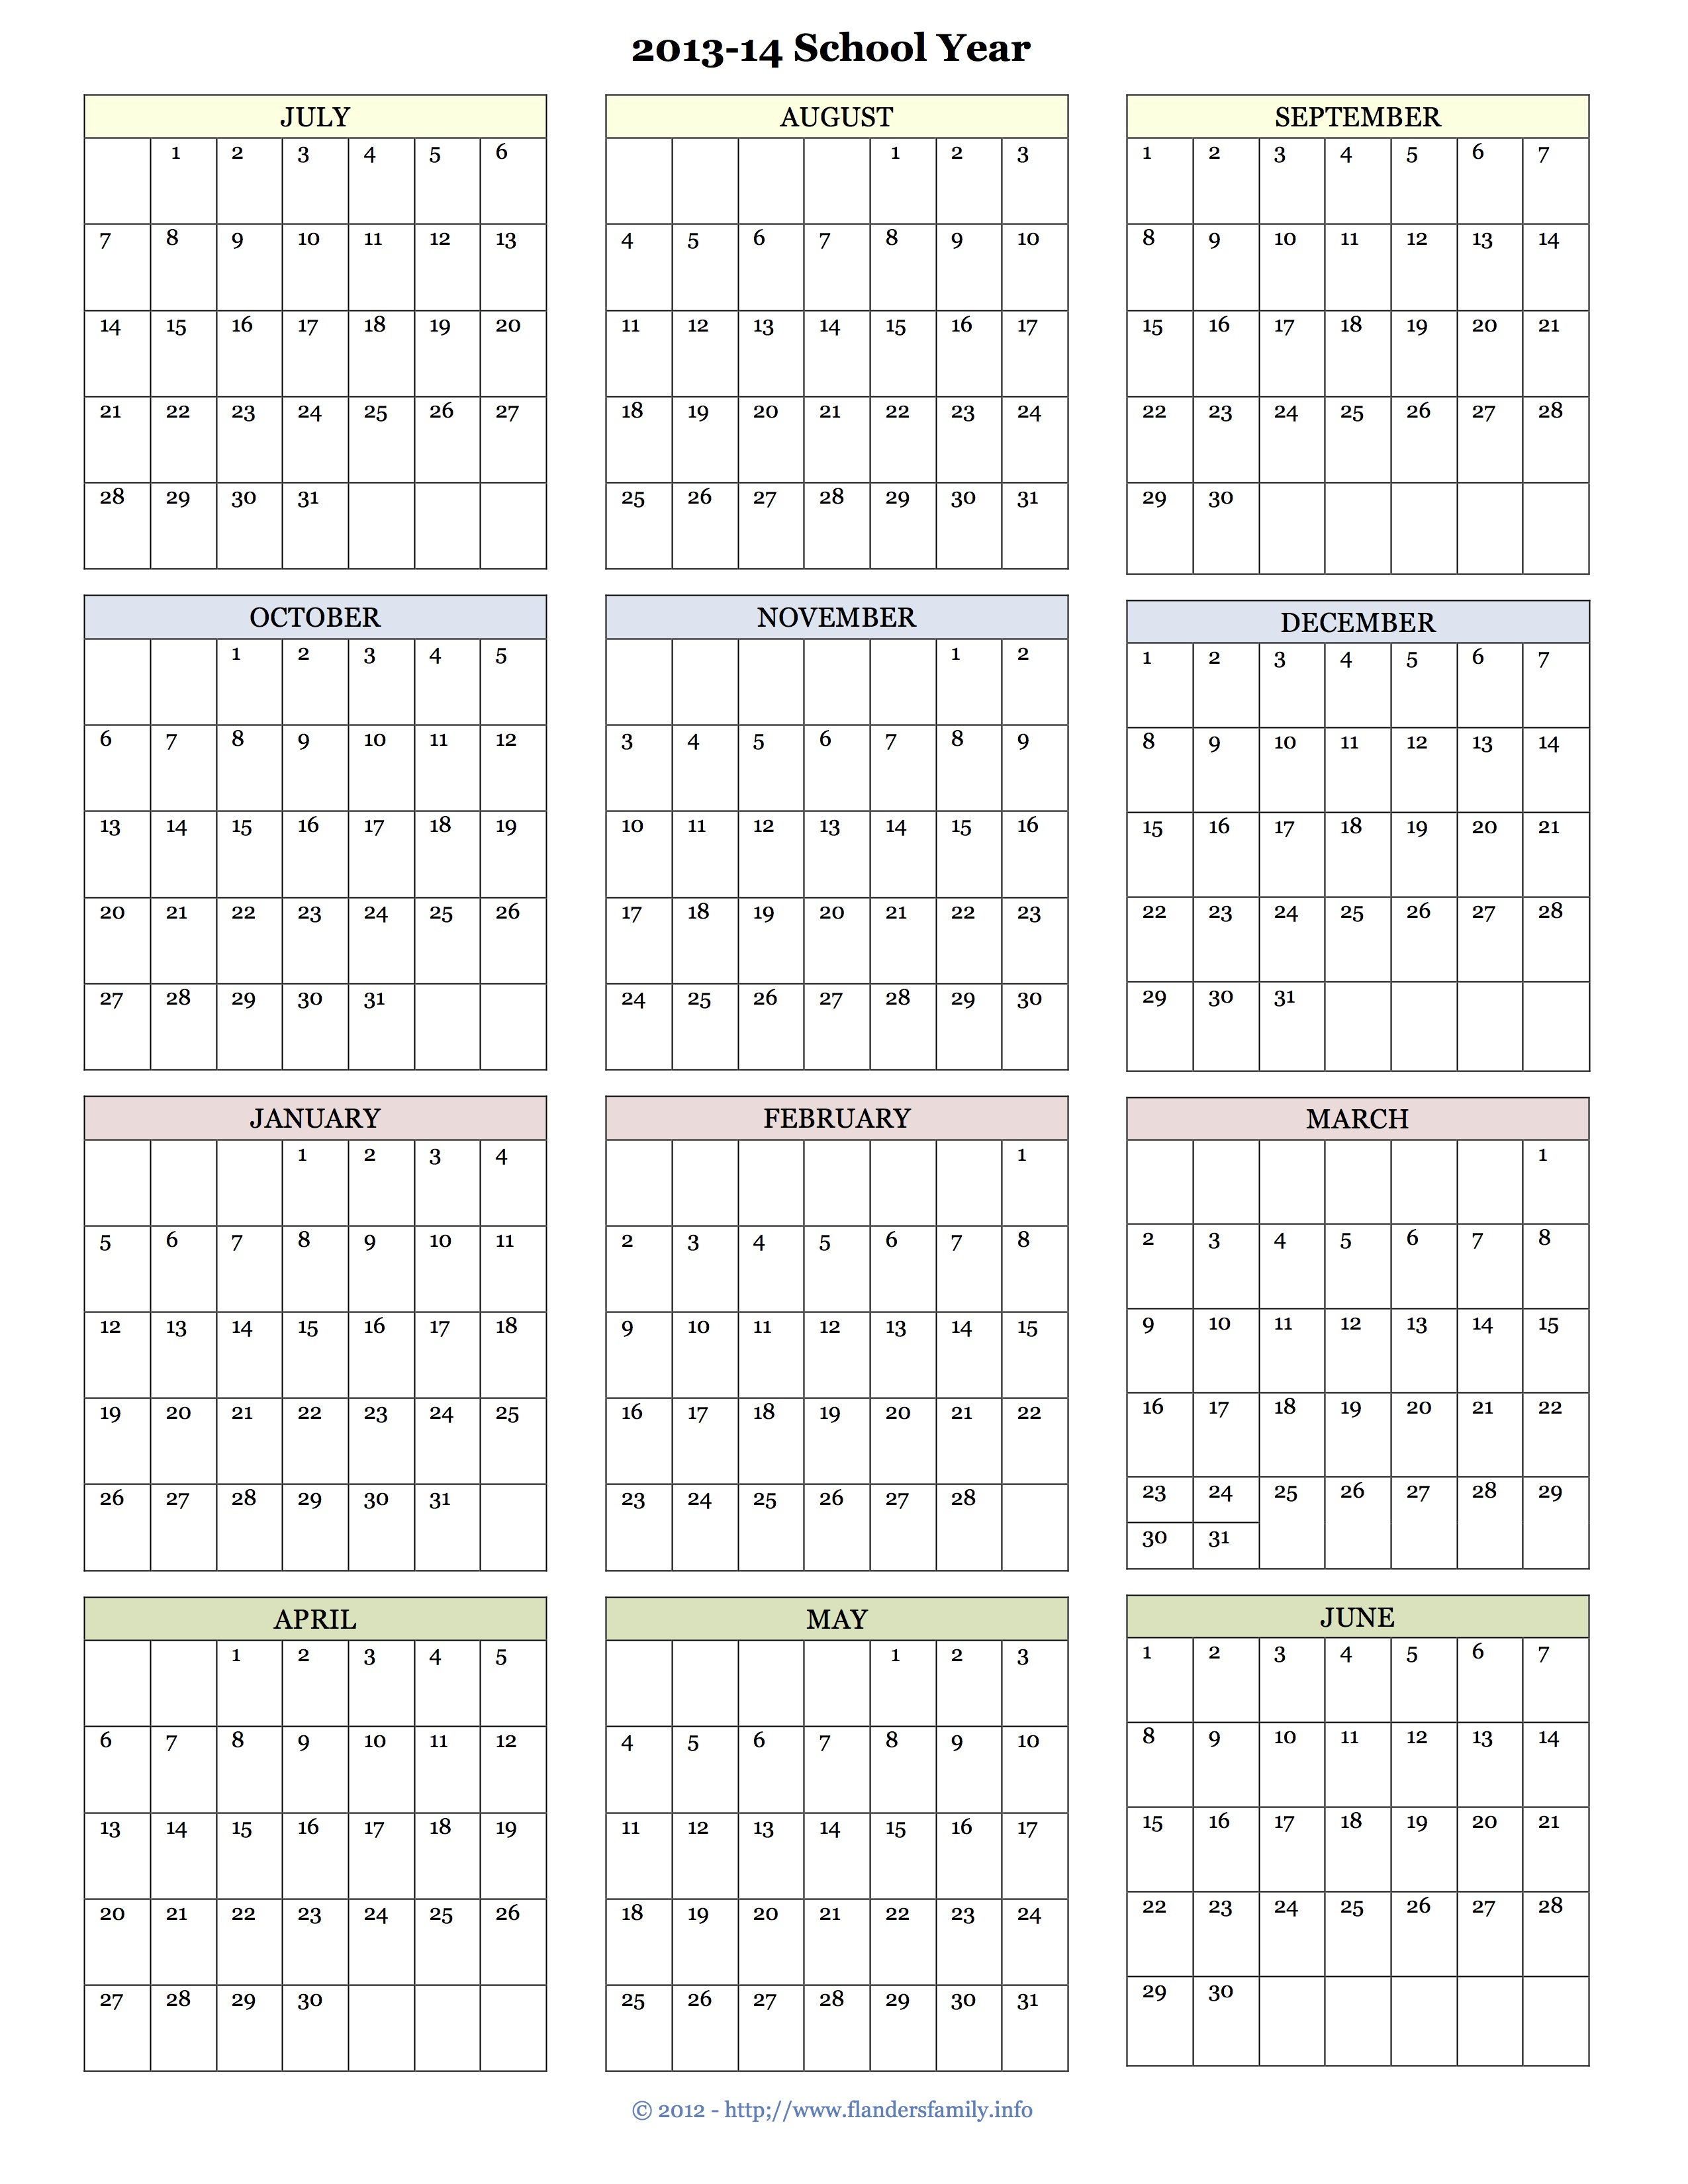 Monthly Calendar Pages Archives - Flanders Family Homelife in Flanders Family 2020 Academic Calendar -2021